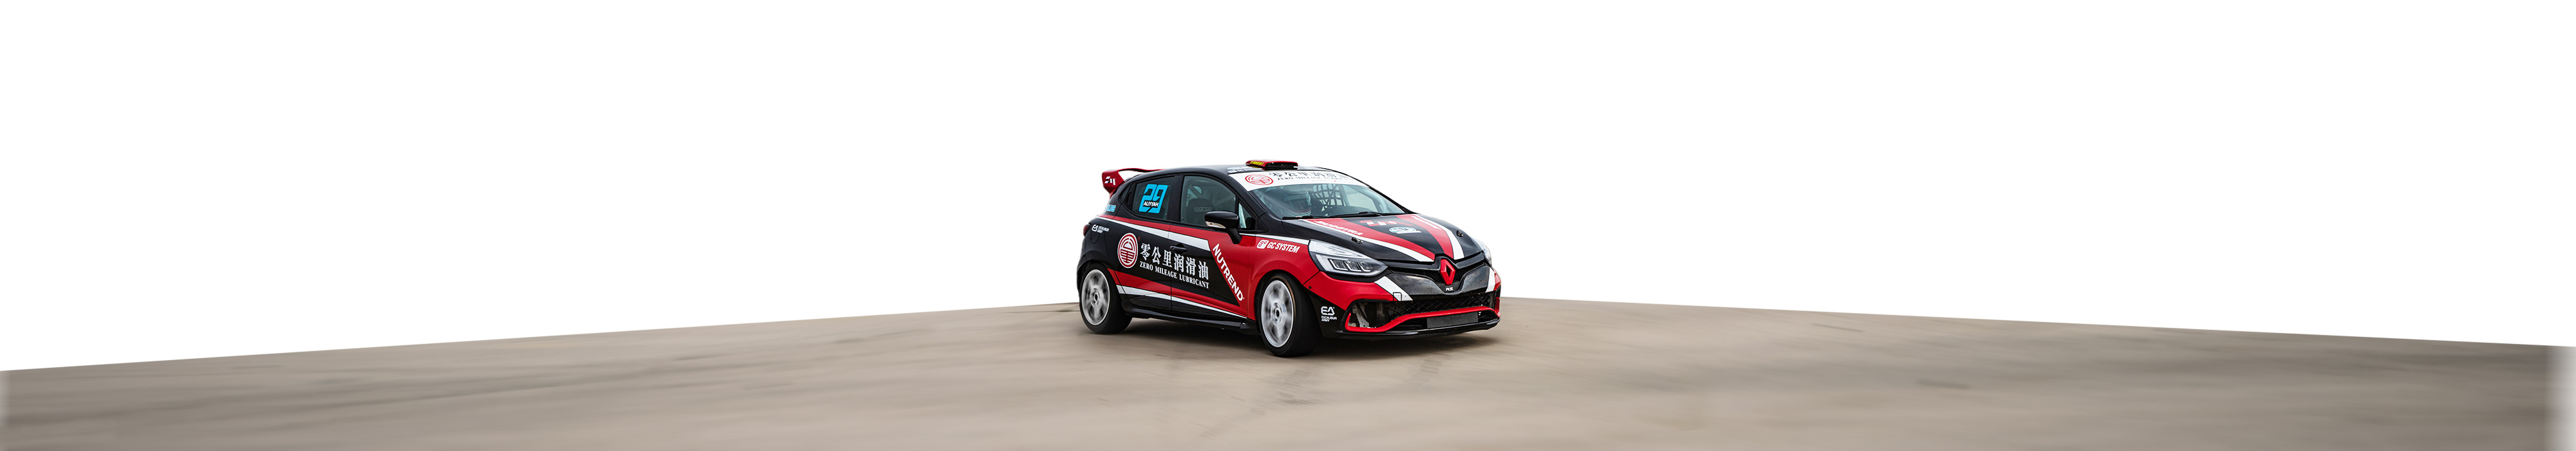 RENAULT CLIO R.S. IV CUP